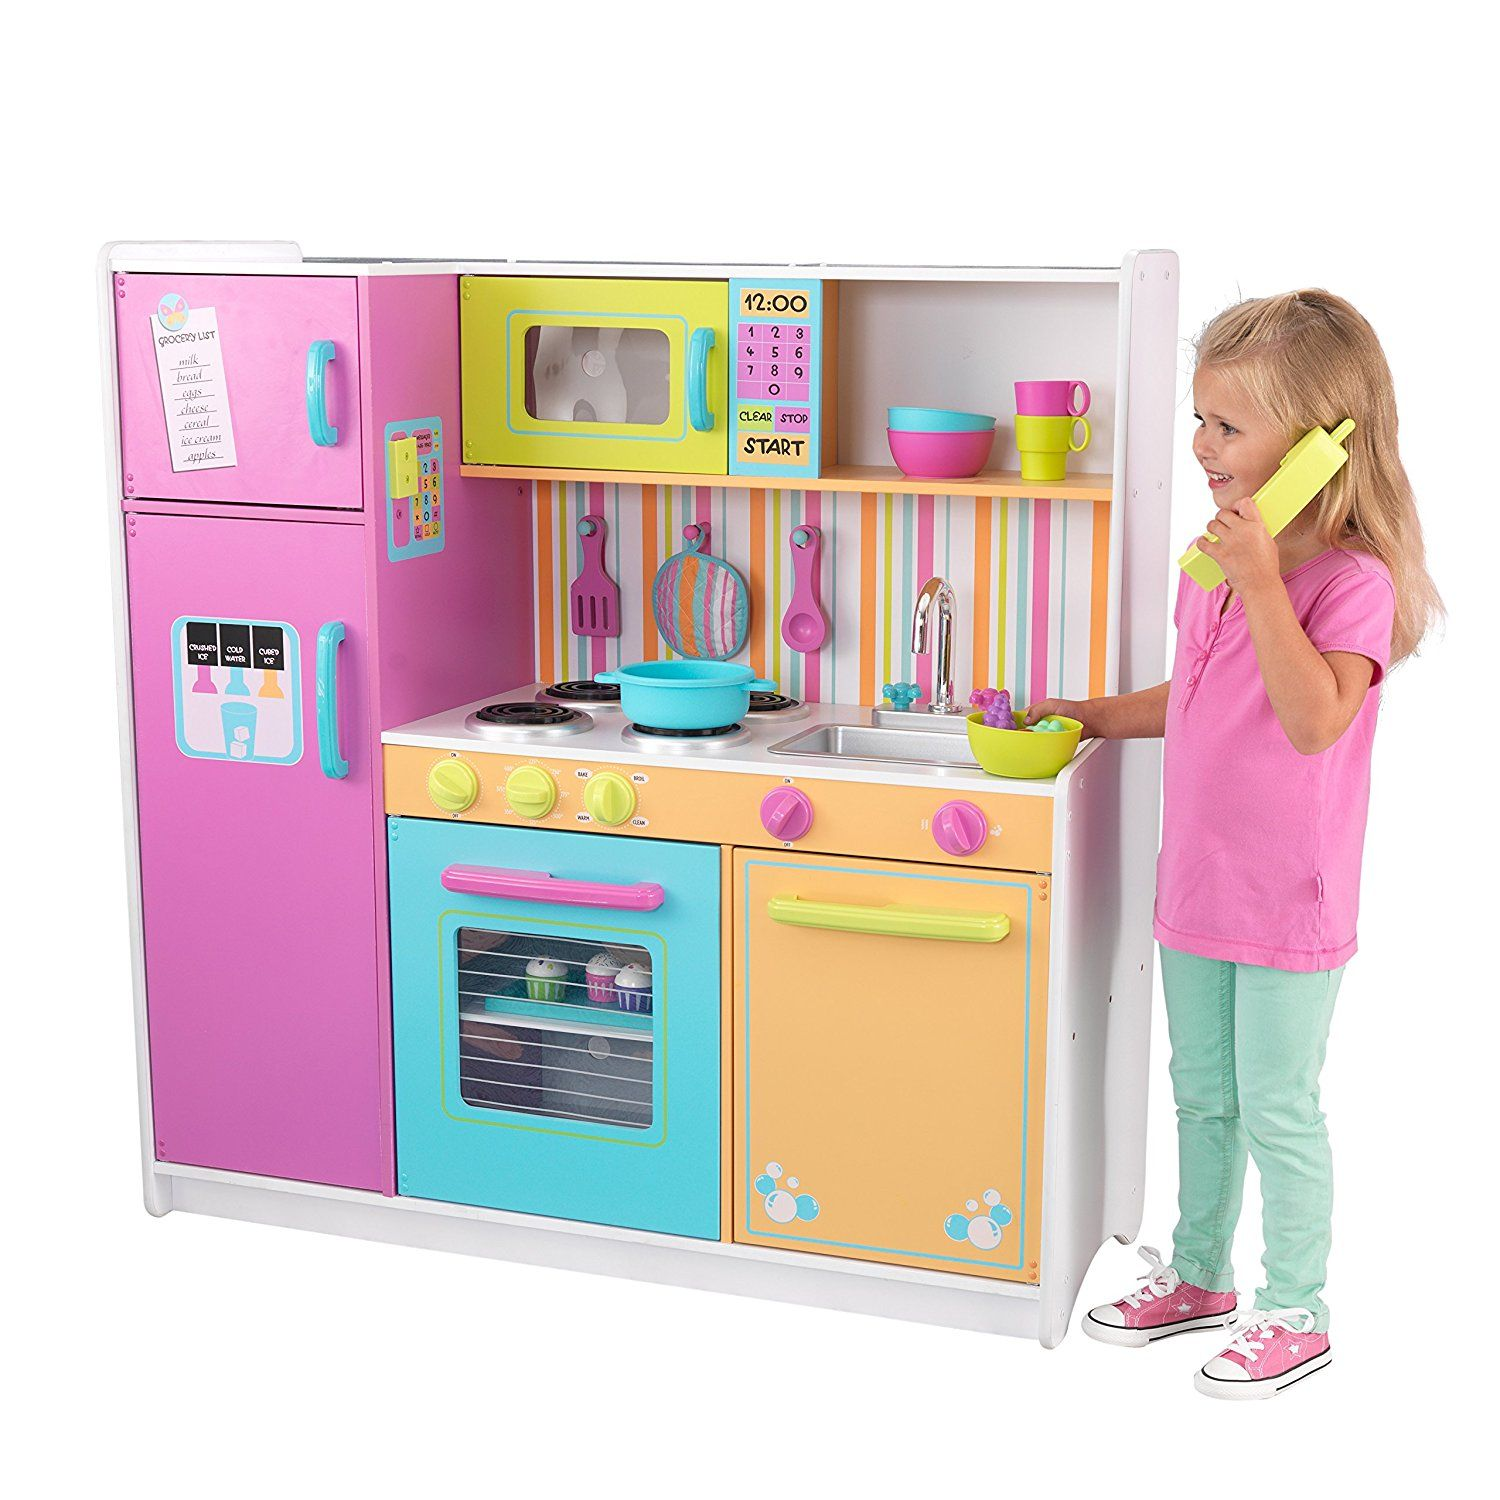 50 Awesome Christmas Presents For 6 Year Old Girls You Must See Kitchen Sets For Kids Toy Kitchen Bright Kitchens